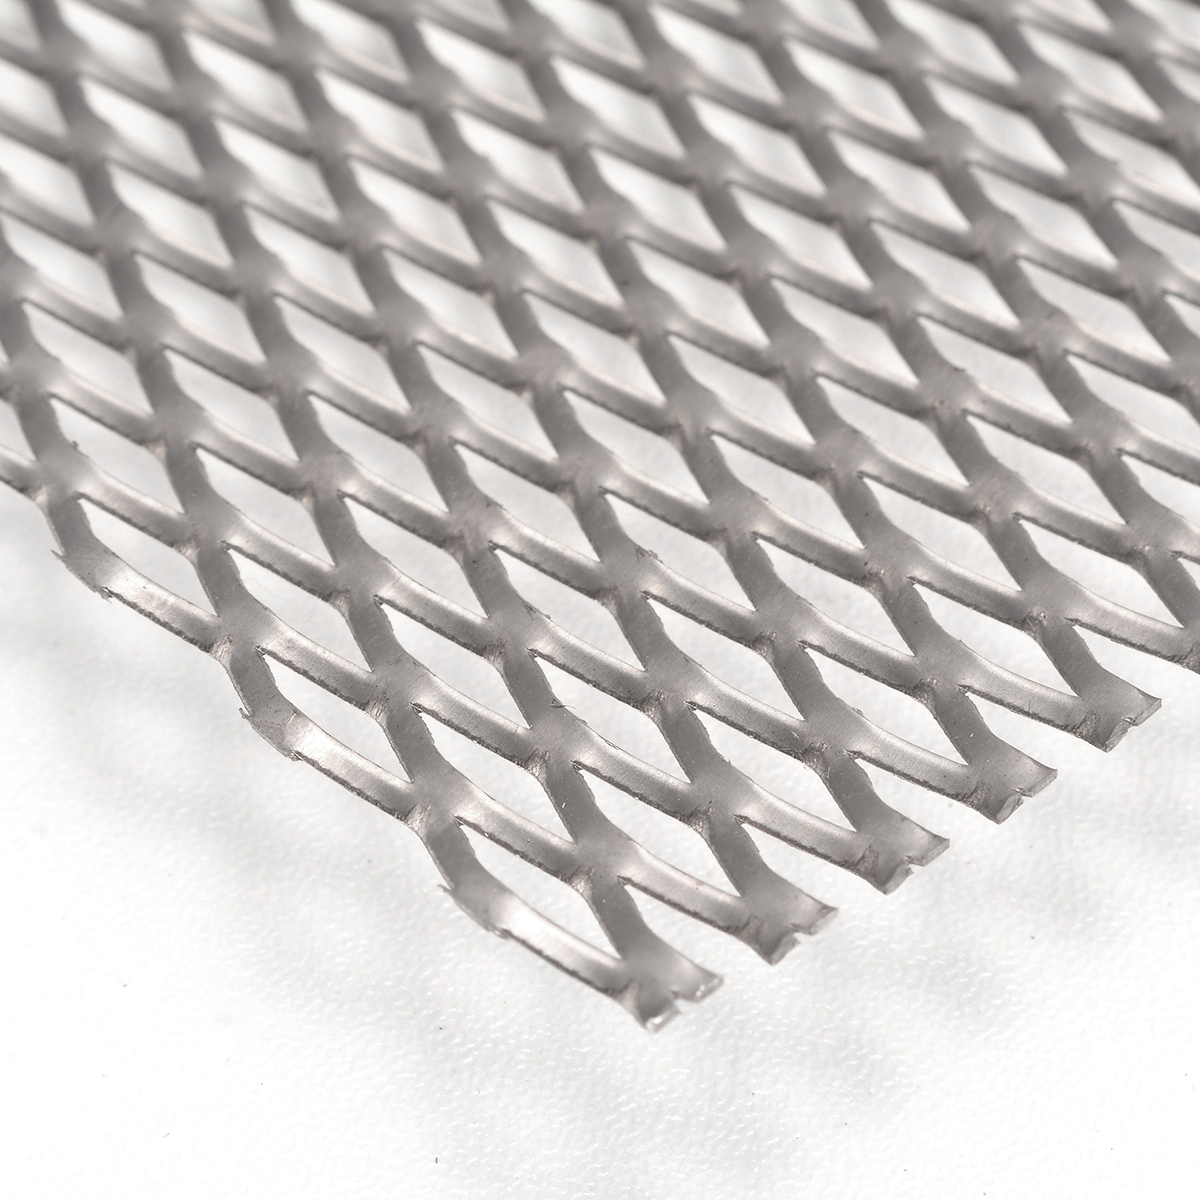 Corrosion Resistance Titanium Mesh 200mm*300mm*0.5mm Durable Metal Titanium Sheet Perforated Plate Expanded